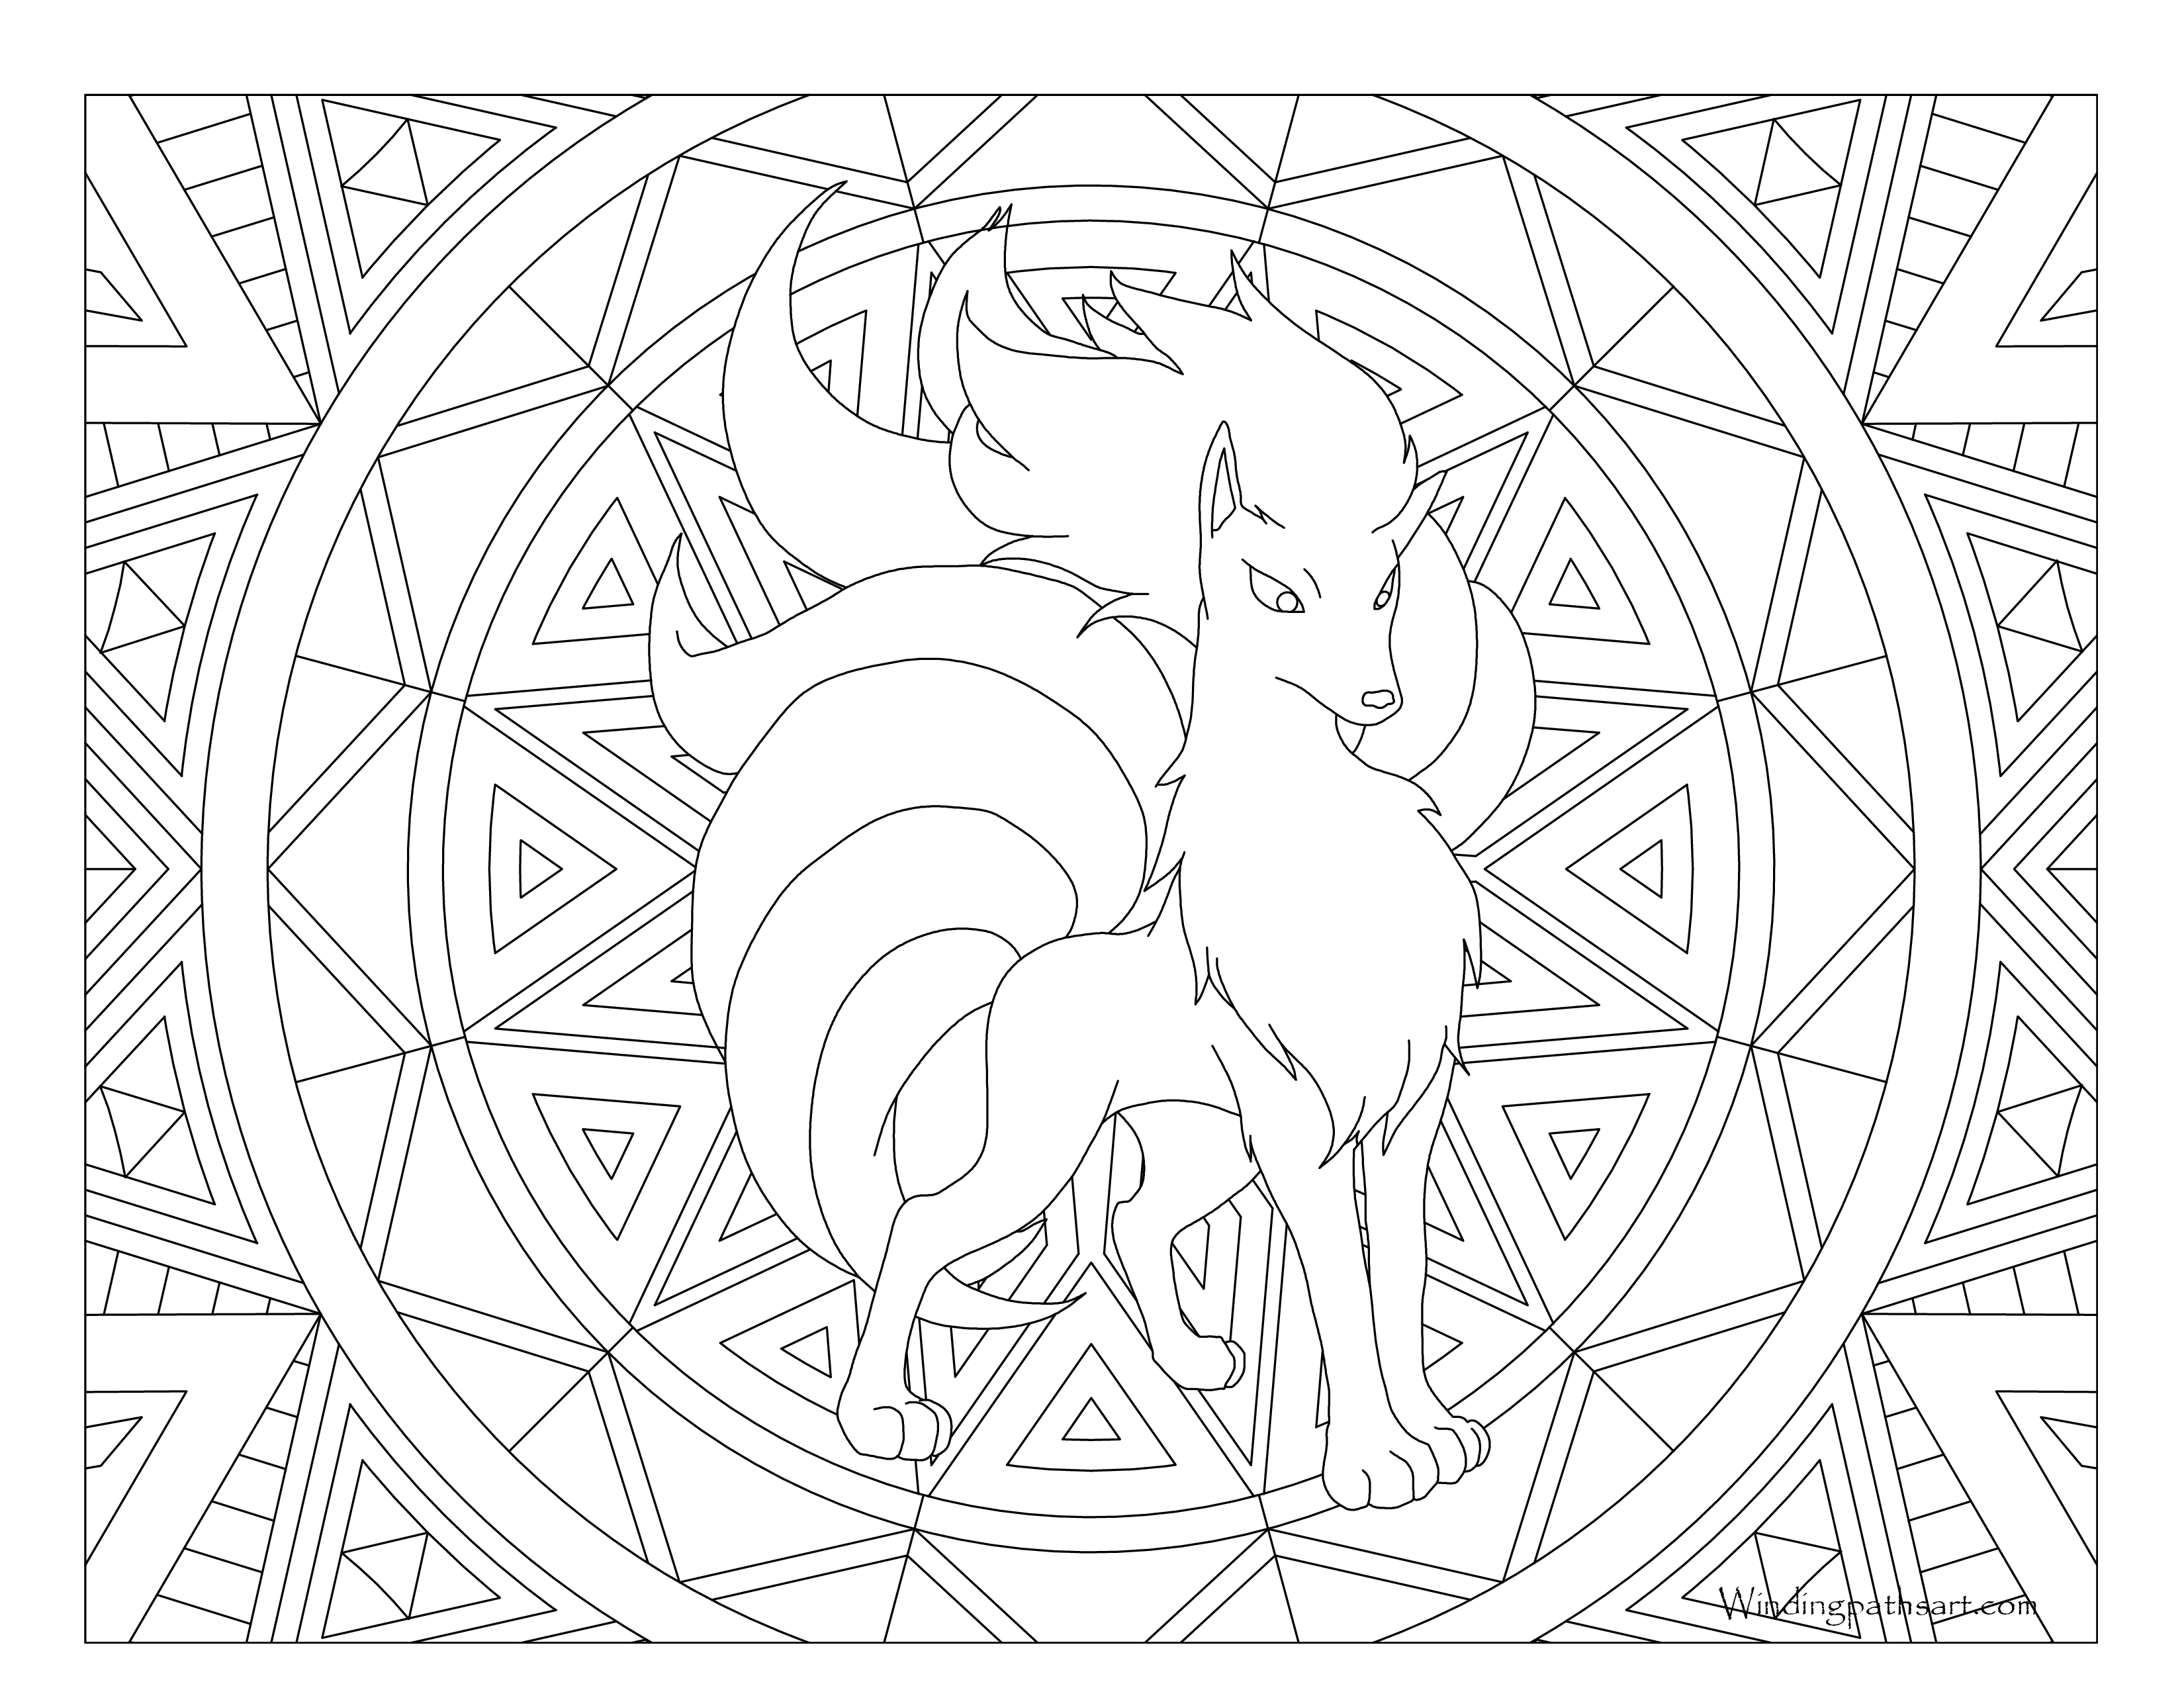 ninetails pokemon coloring pages pokemon coloring pages ninetales pokemon coloring pokemon ninetails coloring pages